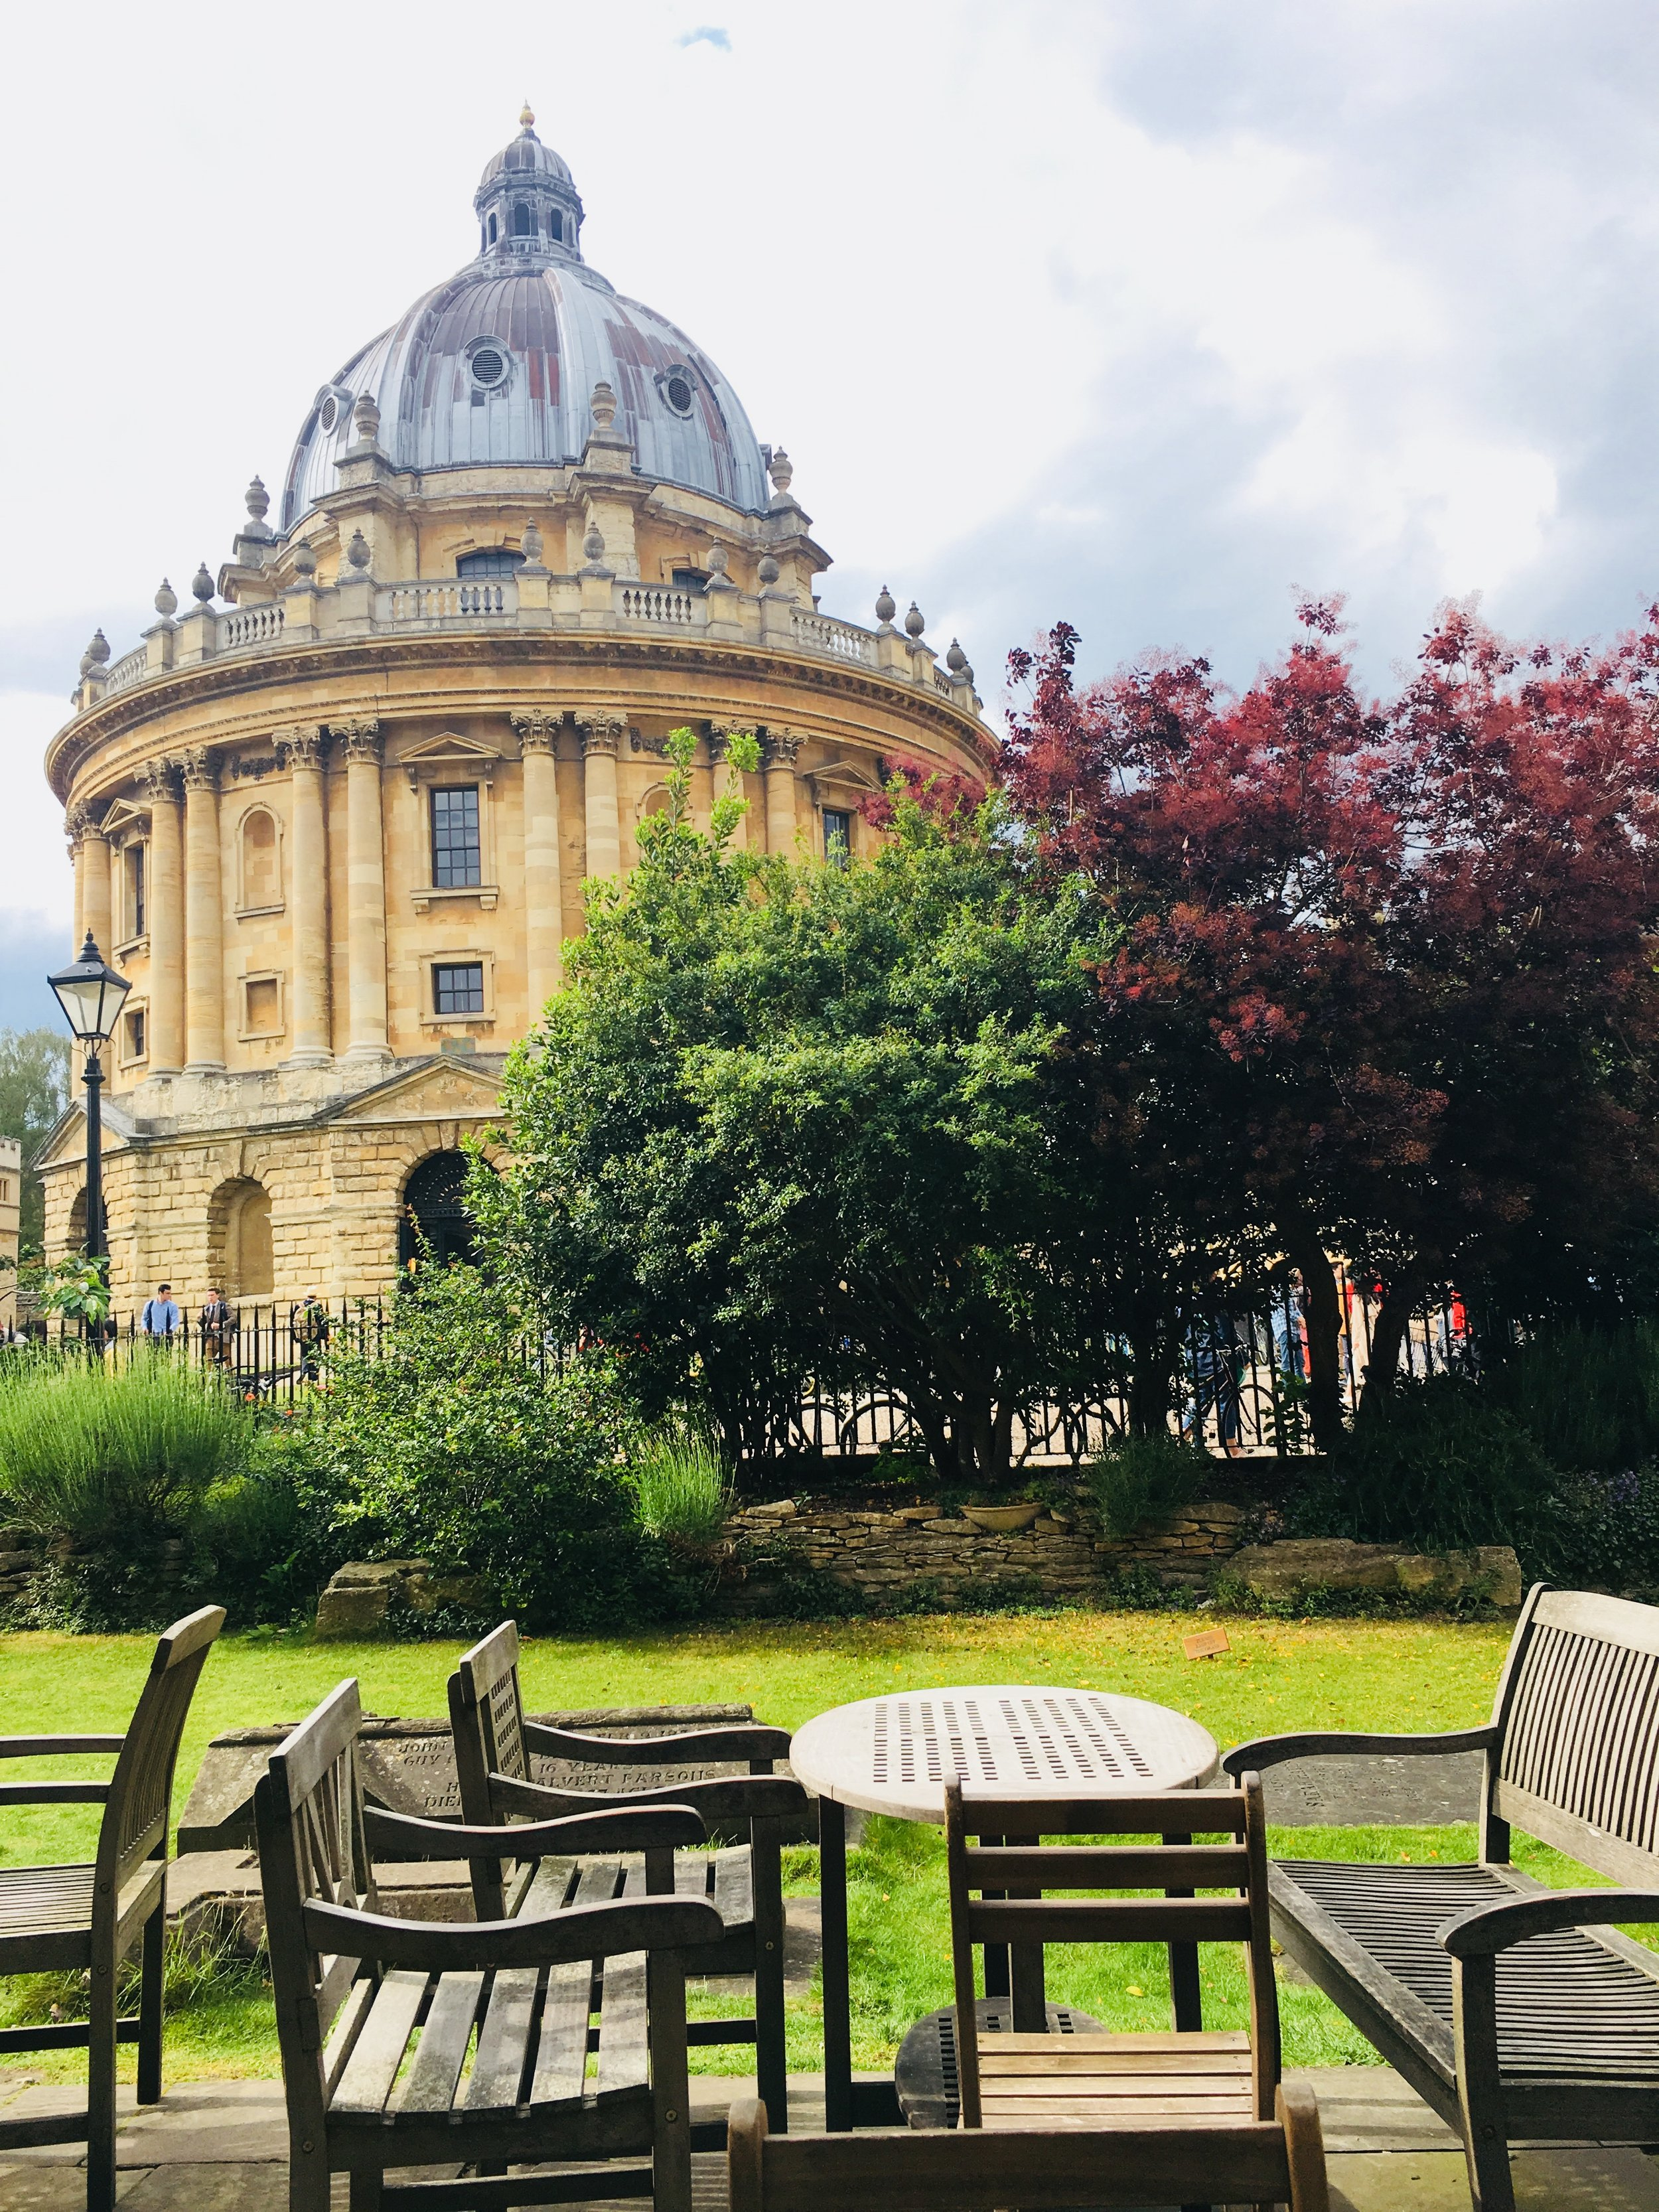 The view of Sheldonian Theatre at Oxford, described by Shonel as associated with an important personal moment in his travel experience